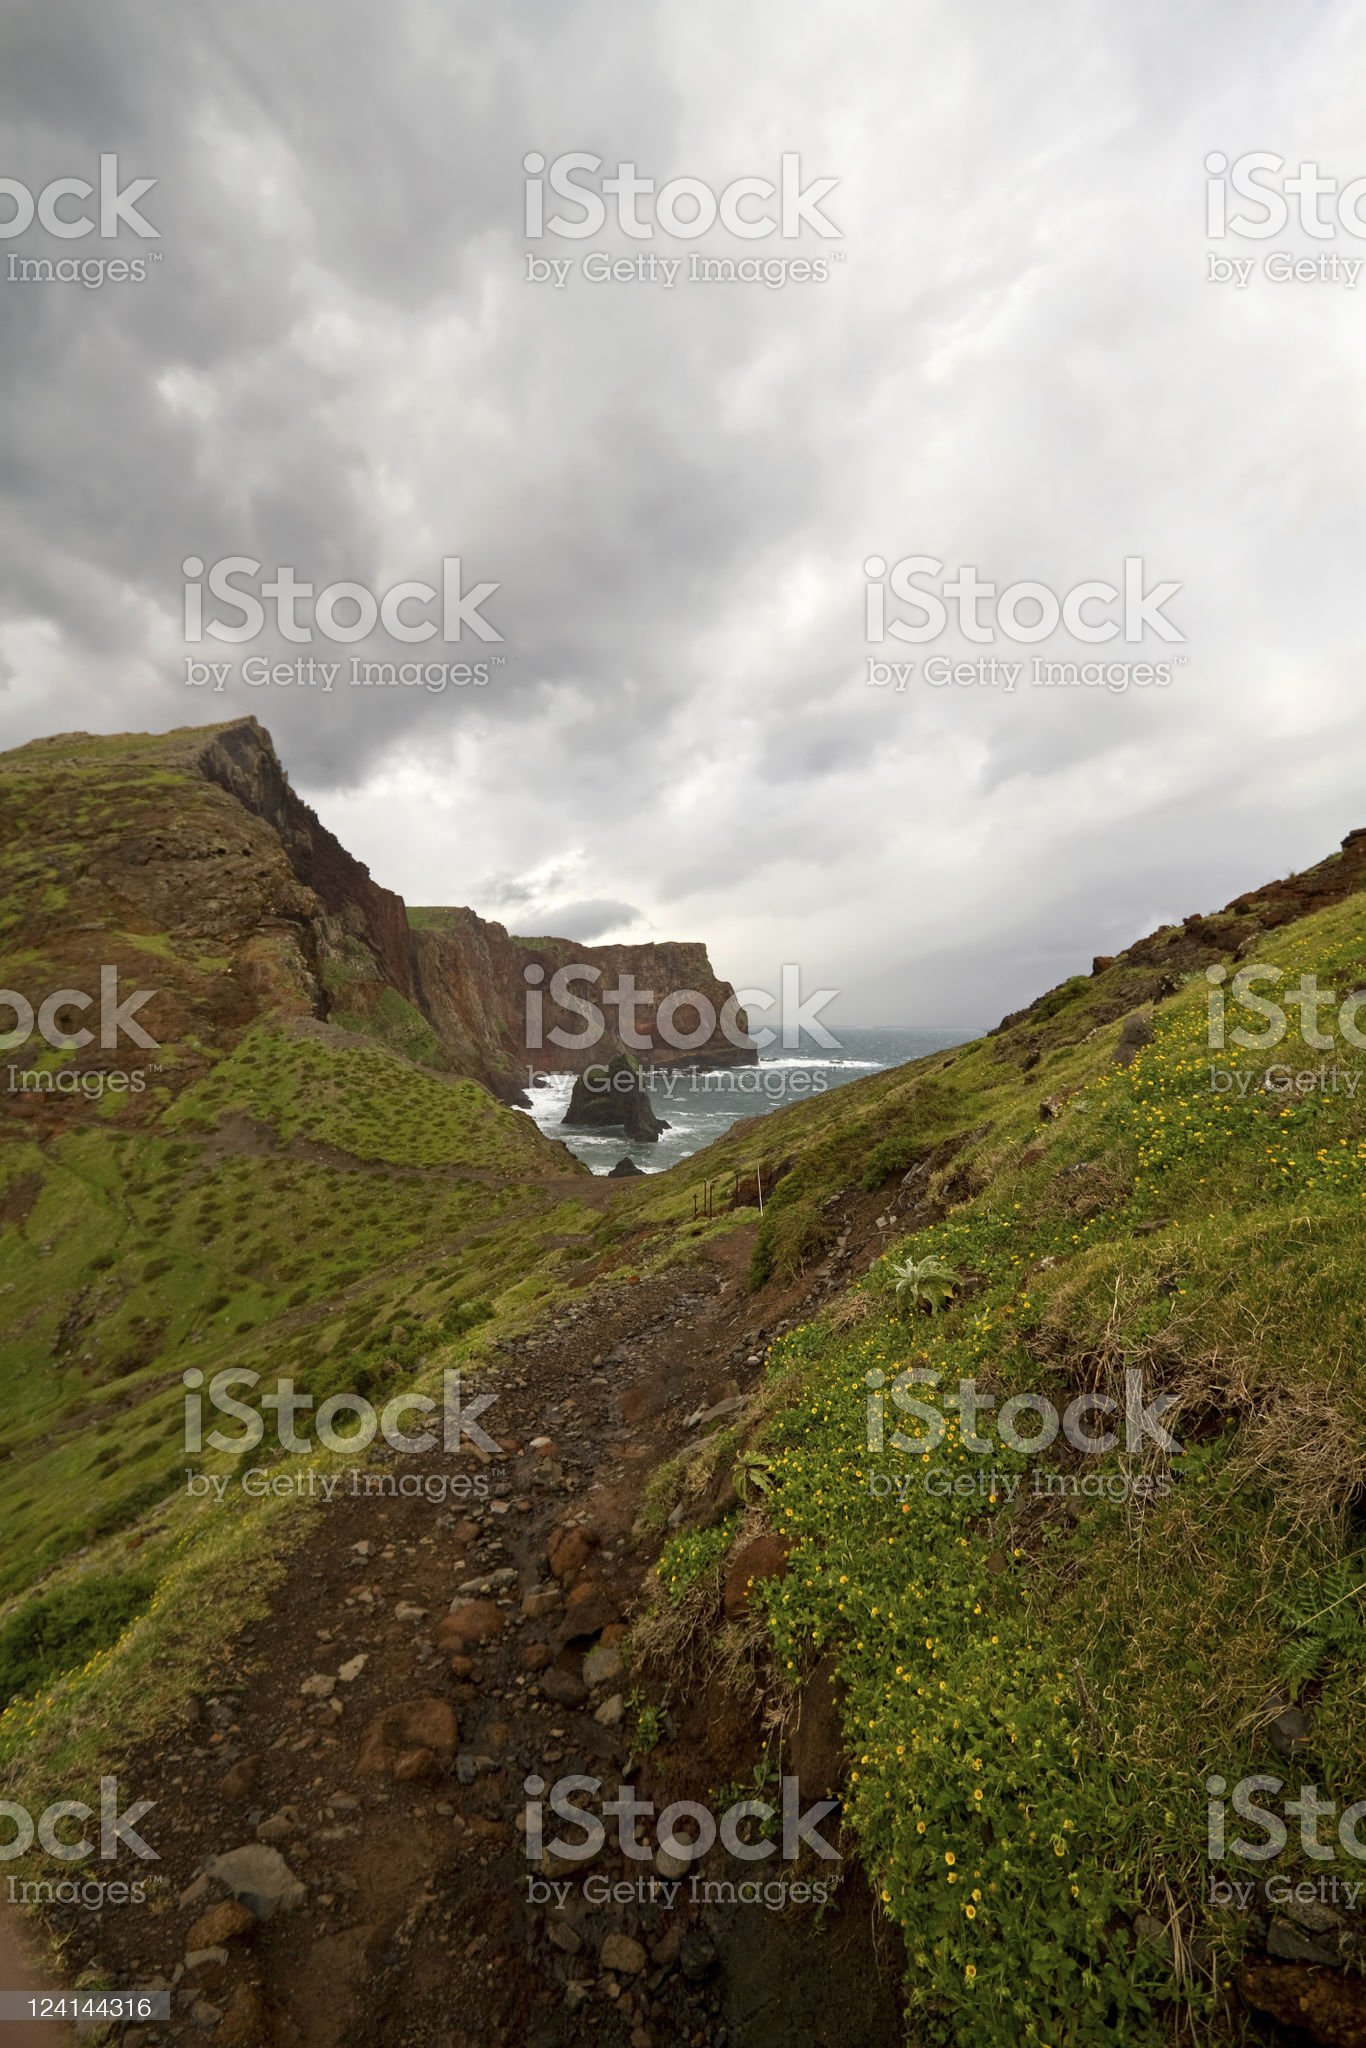 Landscape with rugged terrain. royalty-free stock photo